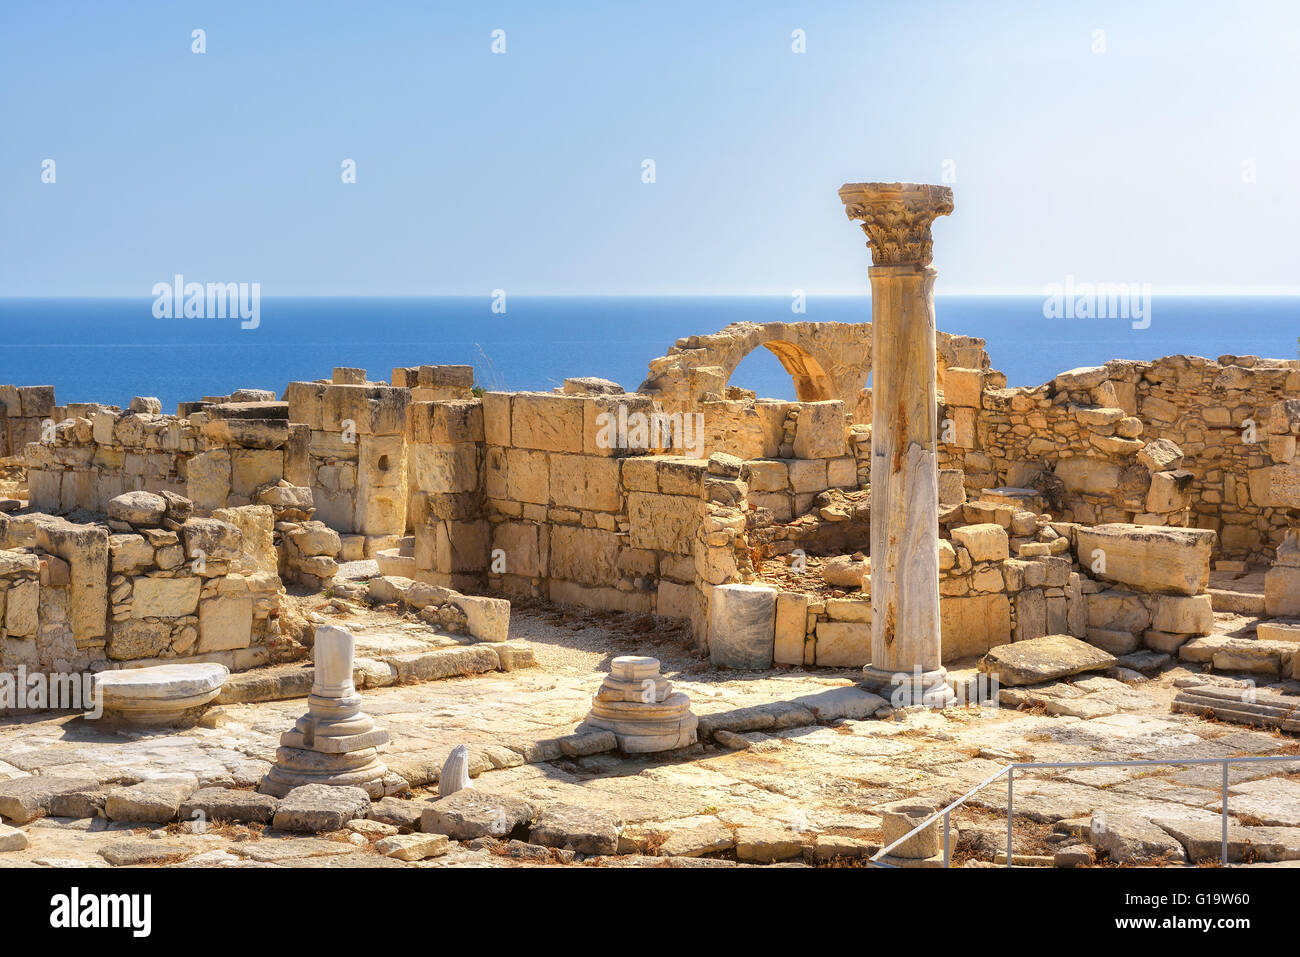 Ruins of ancient Kourion. Limassol District. Cyprus - Stock Image